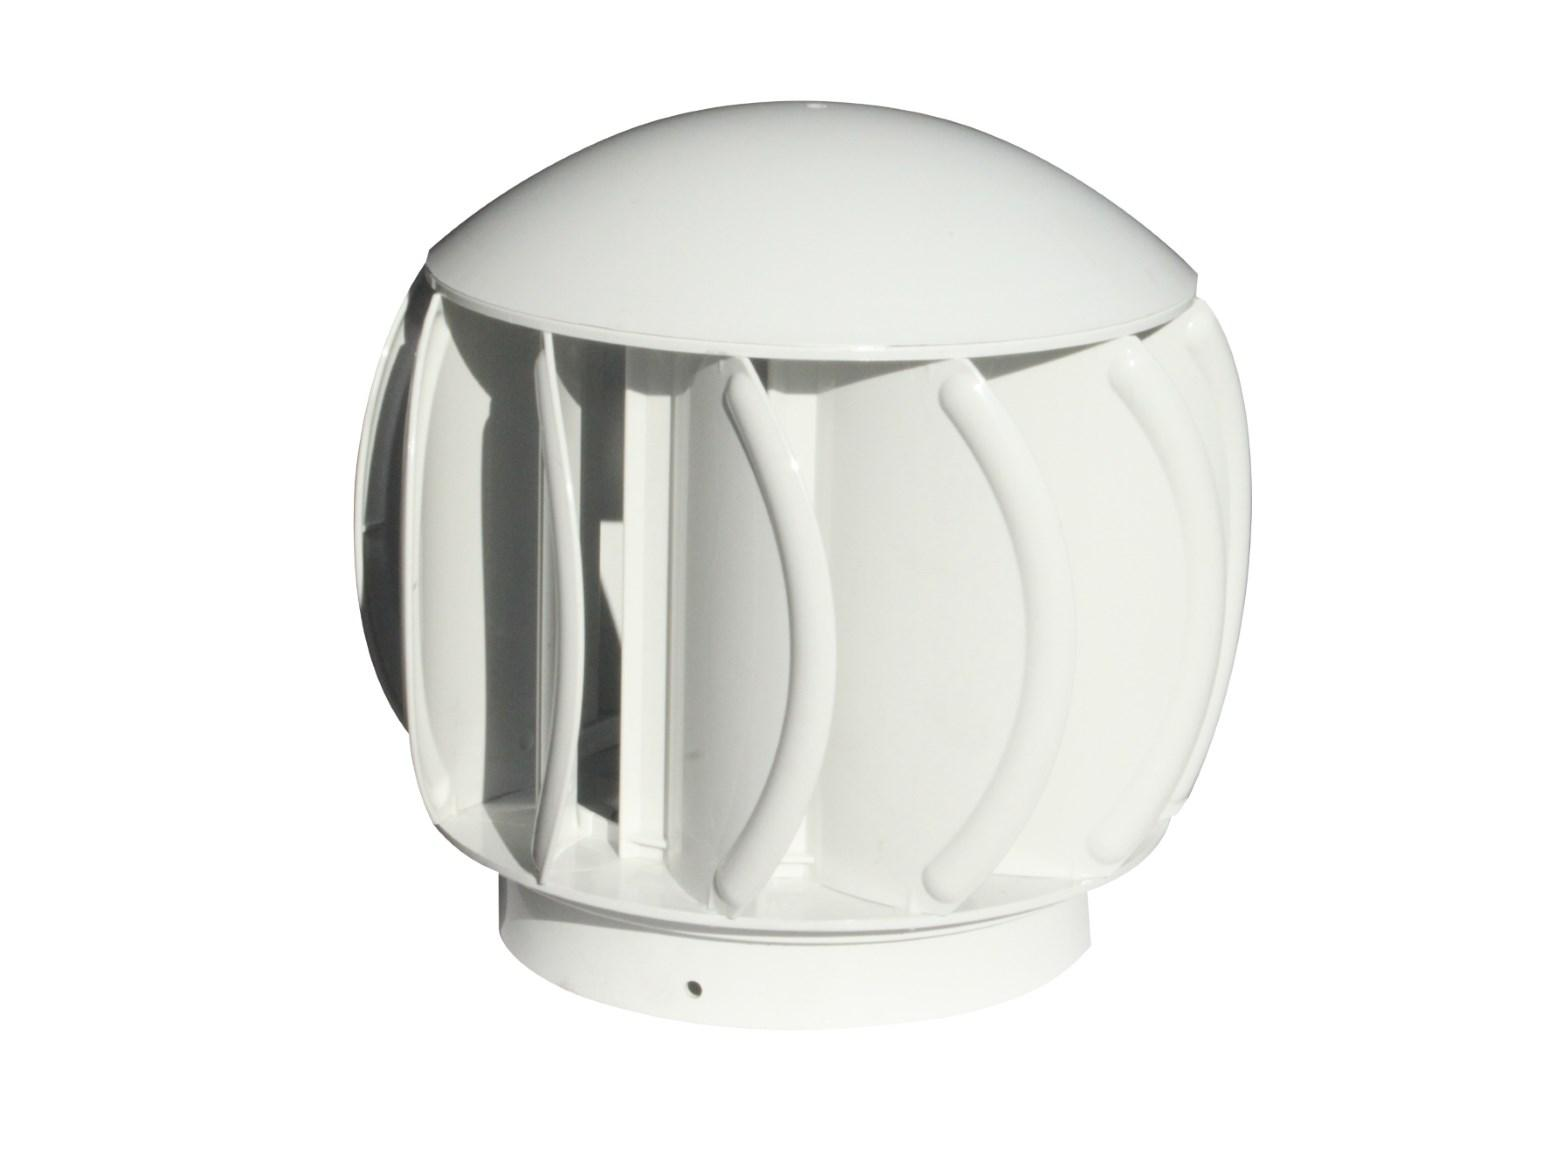 Edmonds sewer vent sewage air vent for bathroom ventilation - Solar powered extractor fan bathroom ...